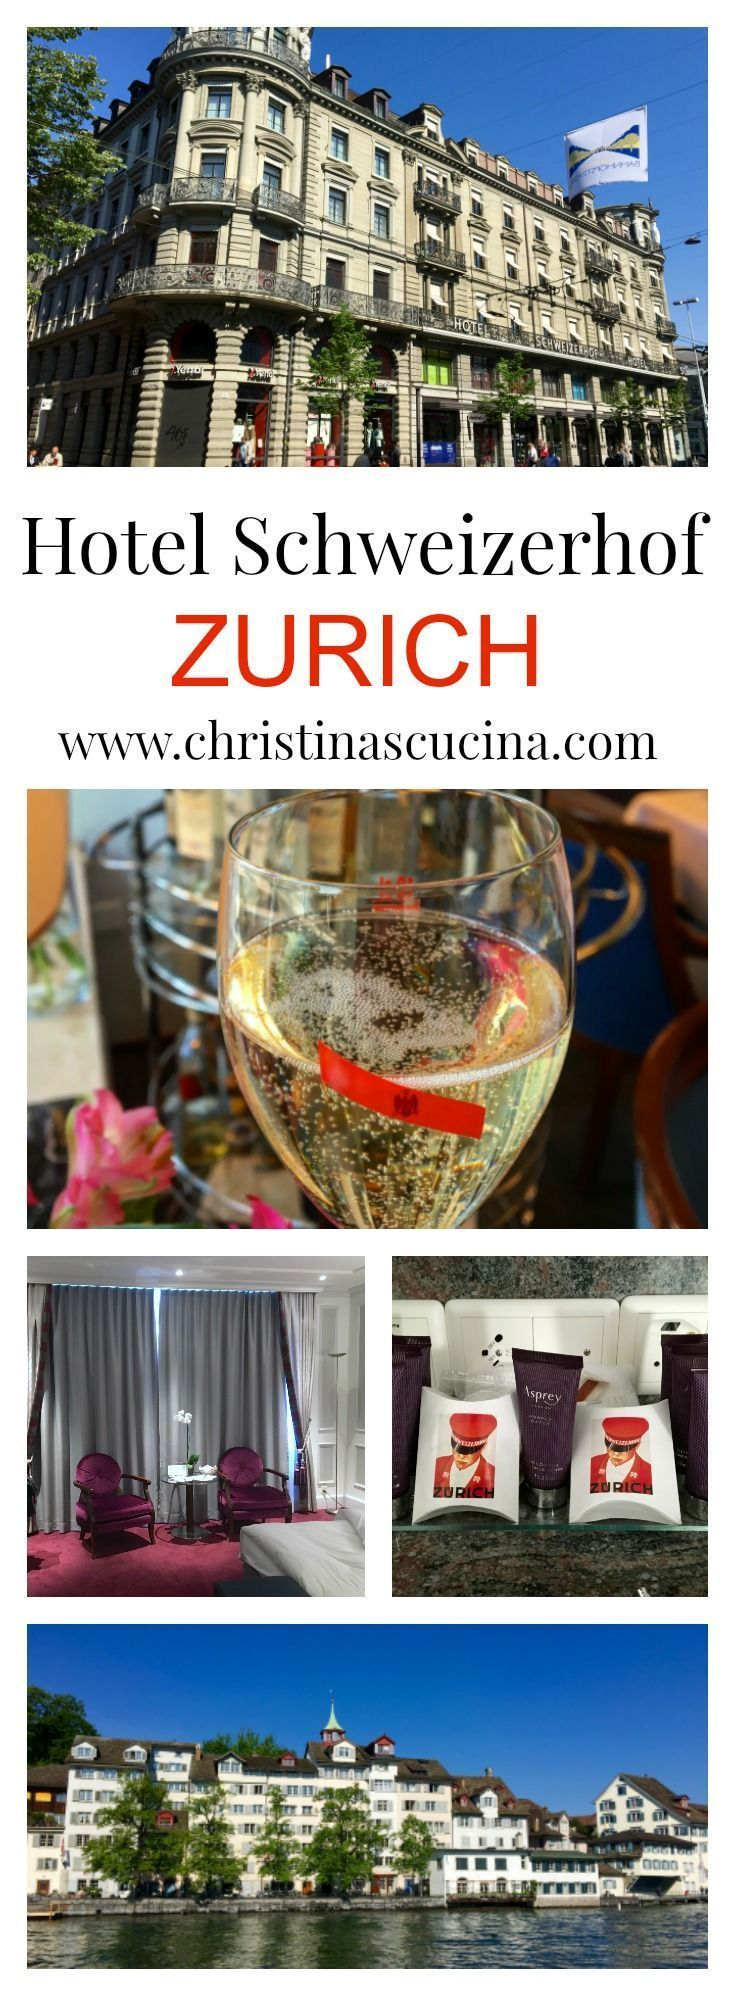 A gem in downtown zurich you will be treated like royalty at hotel a gem in downtown zurich you will be treated like royalty at hotel schweizerhof solutioingenieria Choice Image